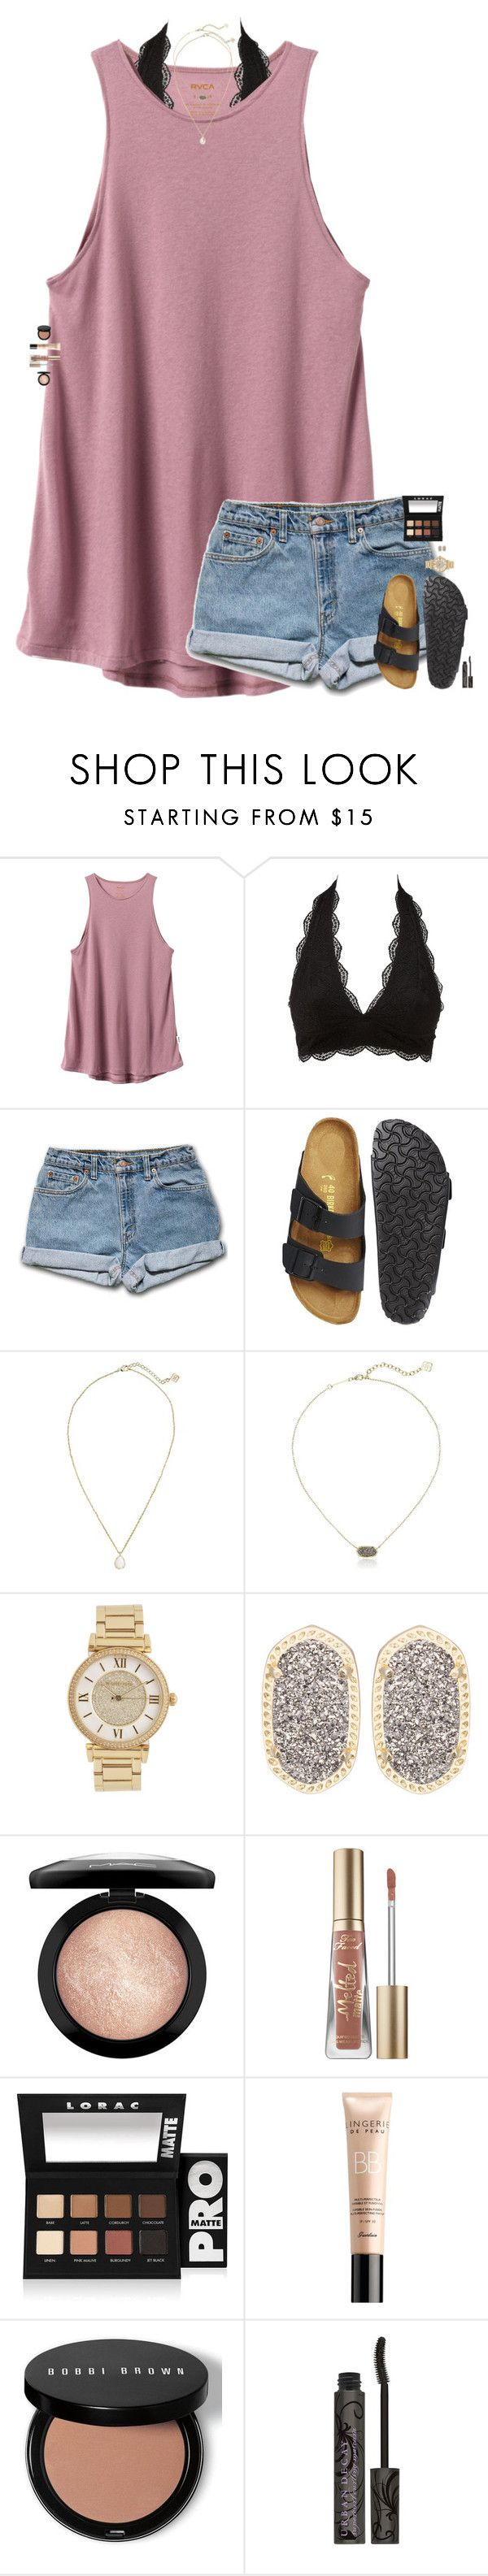 """I've been feeling everything from hate to love from love to lust from lust to truth I guess that's how I know you."" by maggie-prep ❤ liked on Polyvore featuring RVCA, Charlotte Russe, Birkenstock, Kendra Scott, Michael Kors, MAC Cosmetics, Too Faced Cosmetics, LORAC, Guerlain and Bobbi Brown Cosmetics"